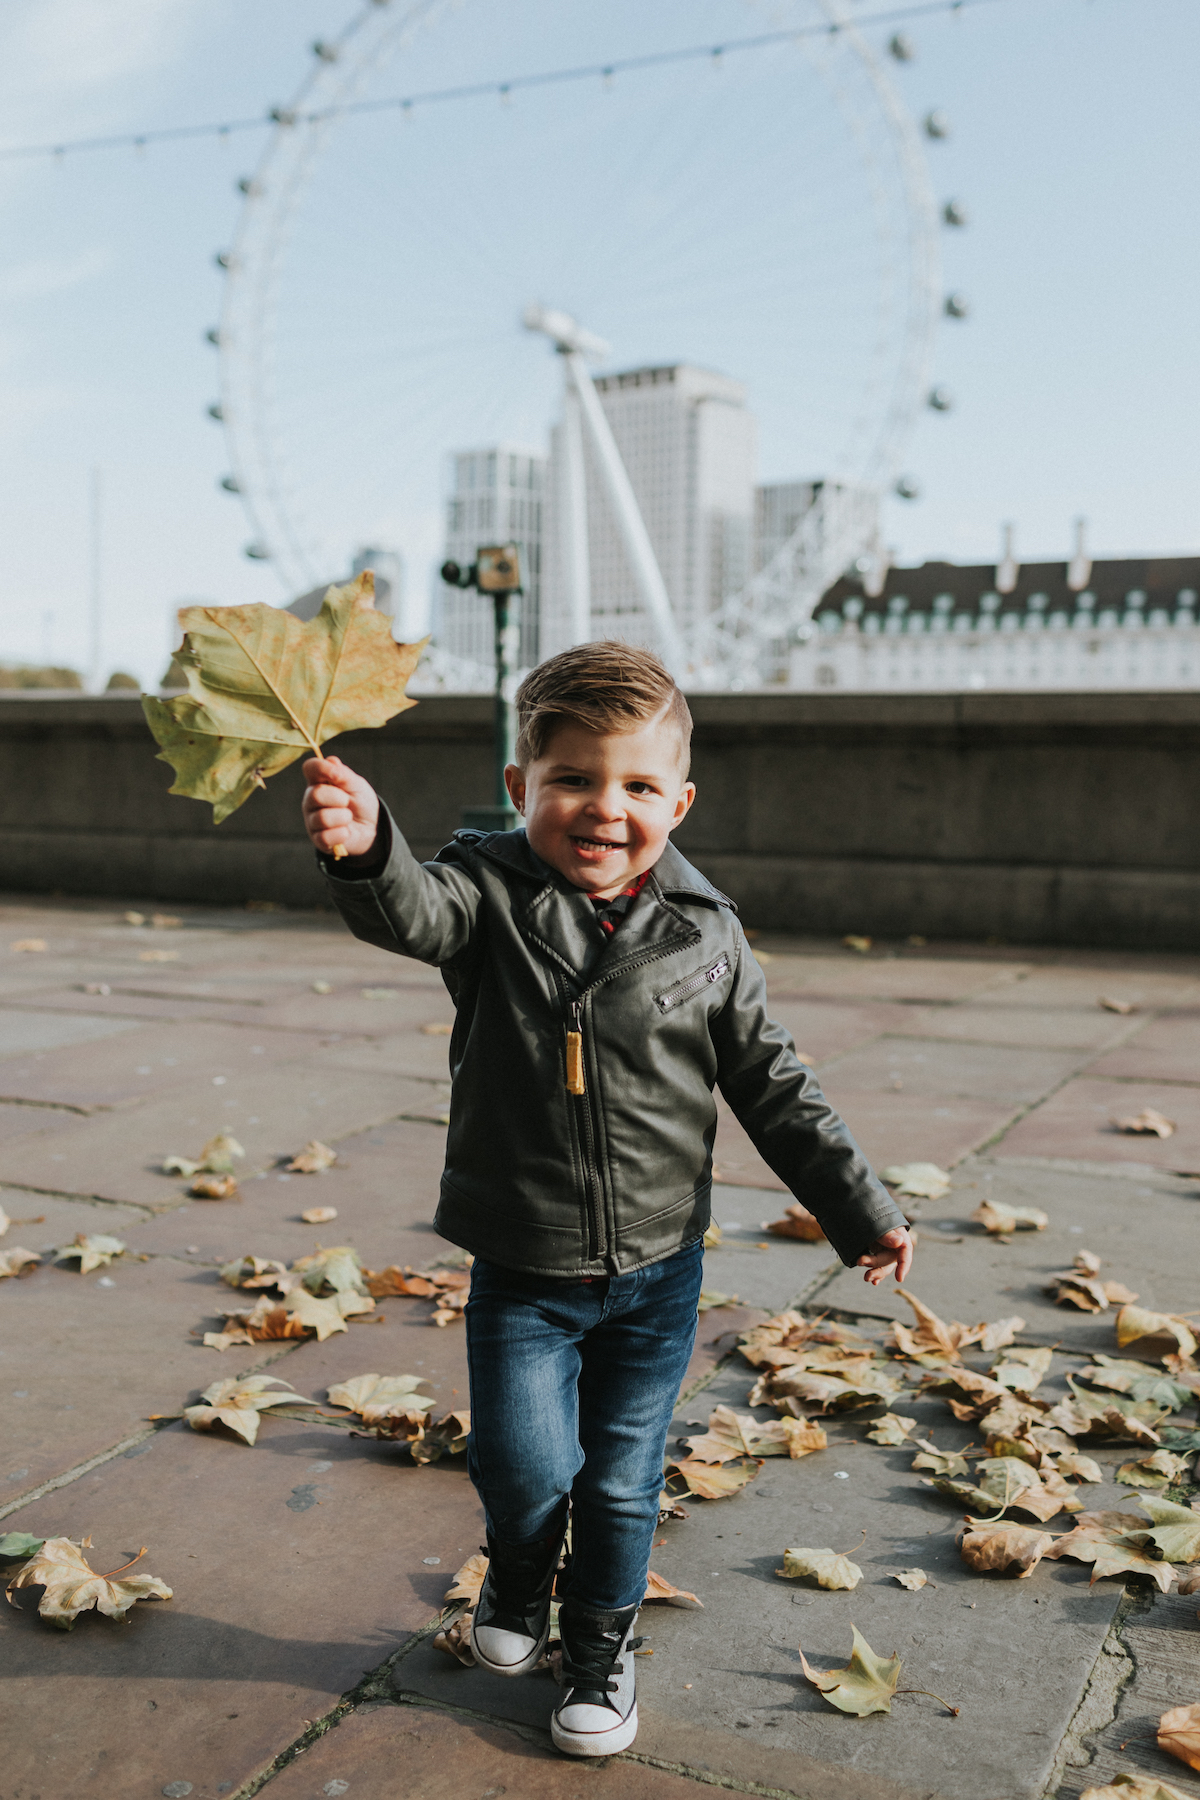 A 2-year-old boy wearing a leather jacket and jeans, smiling and holding a colourful leaf in London, UK.